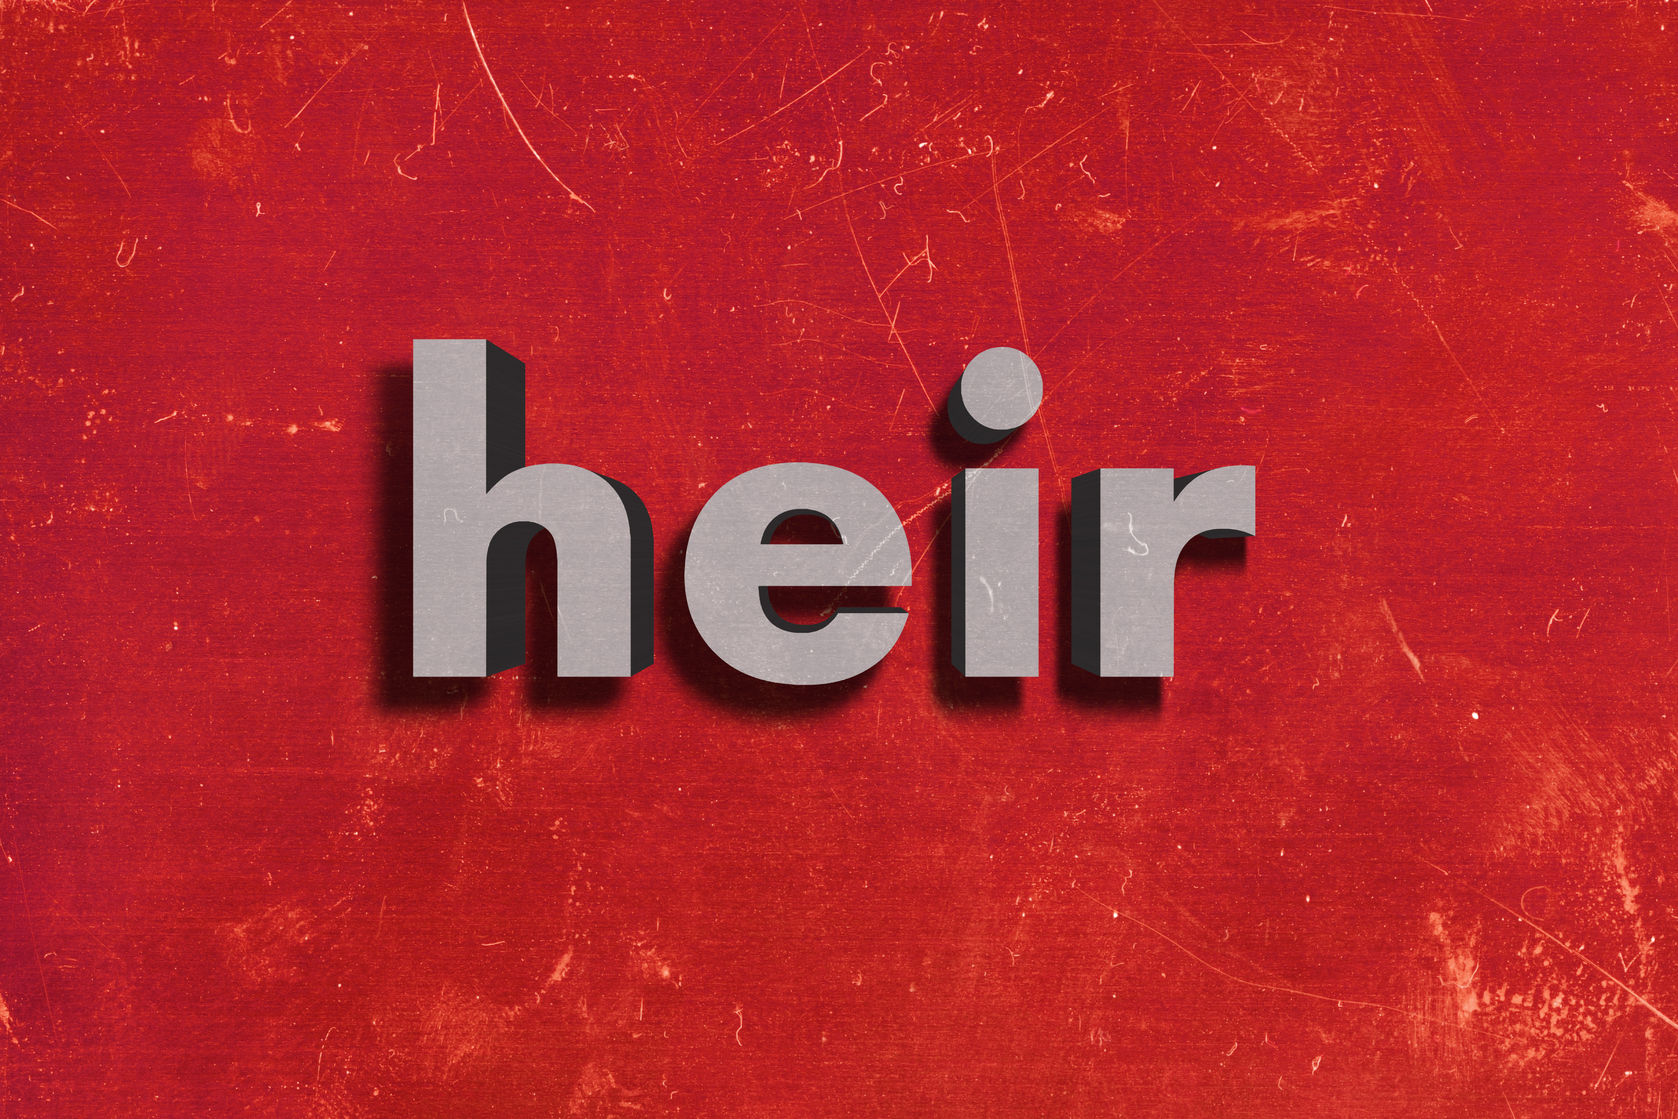 """The word """"heir"""" in gray on a red background"""